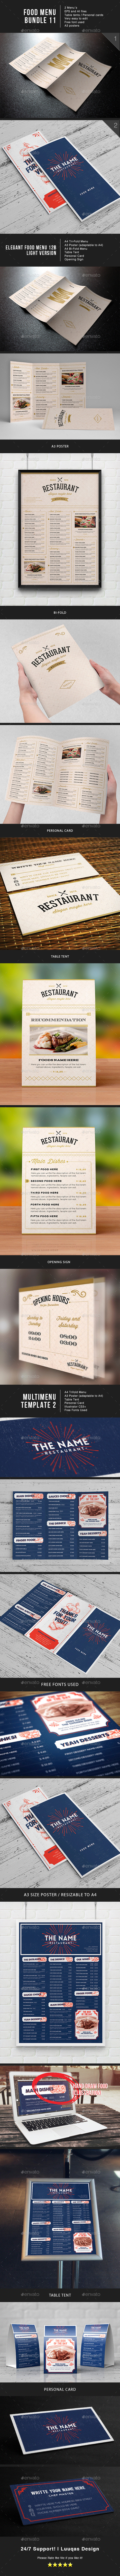 GraphicRiver Food Menu Bundle 11 8960822